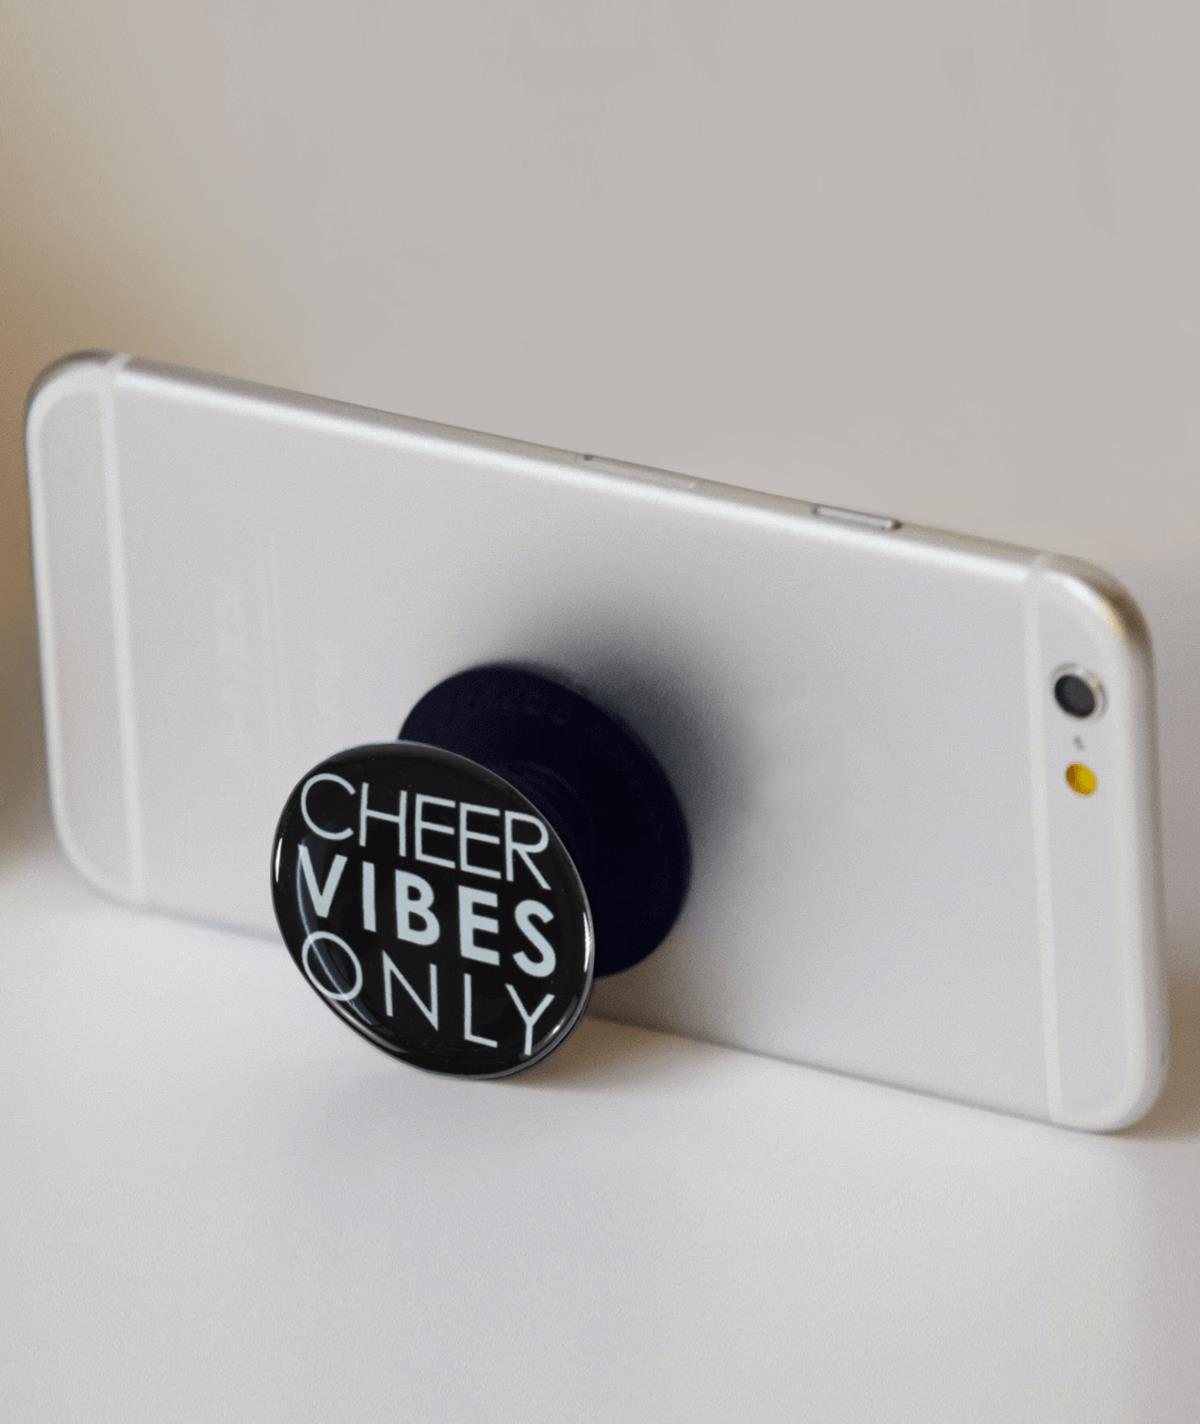 Chassé Cheer Vibes Only Phone Stand